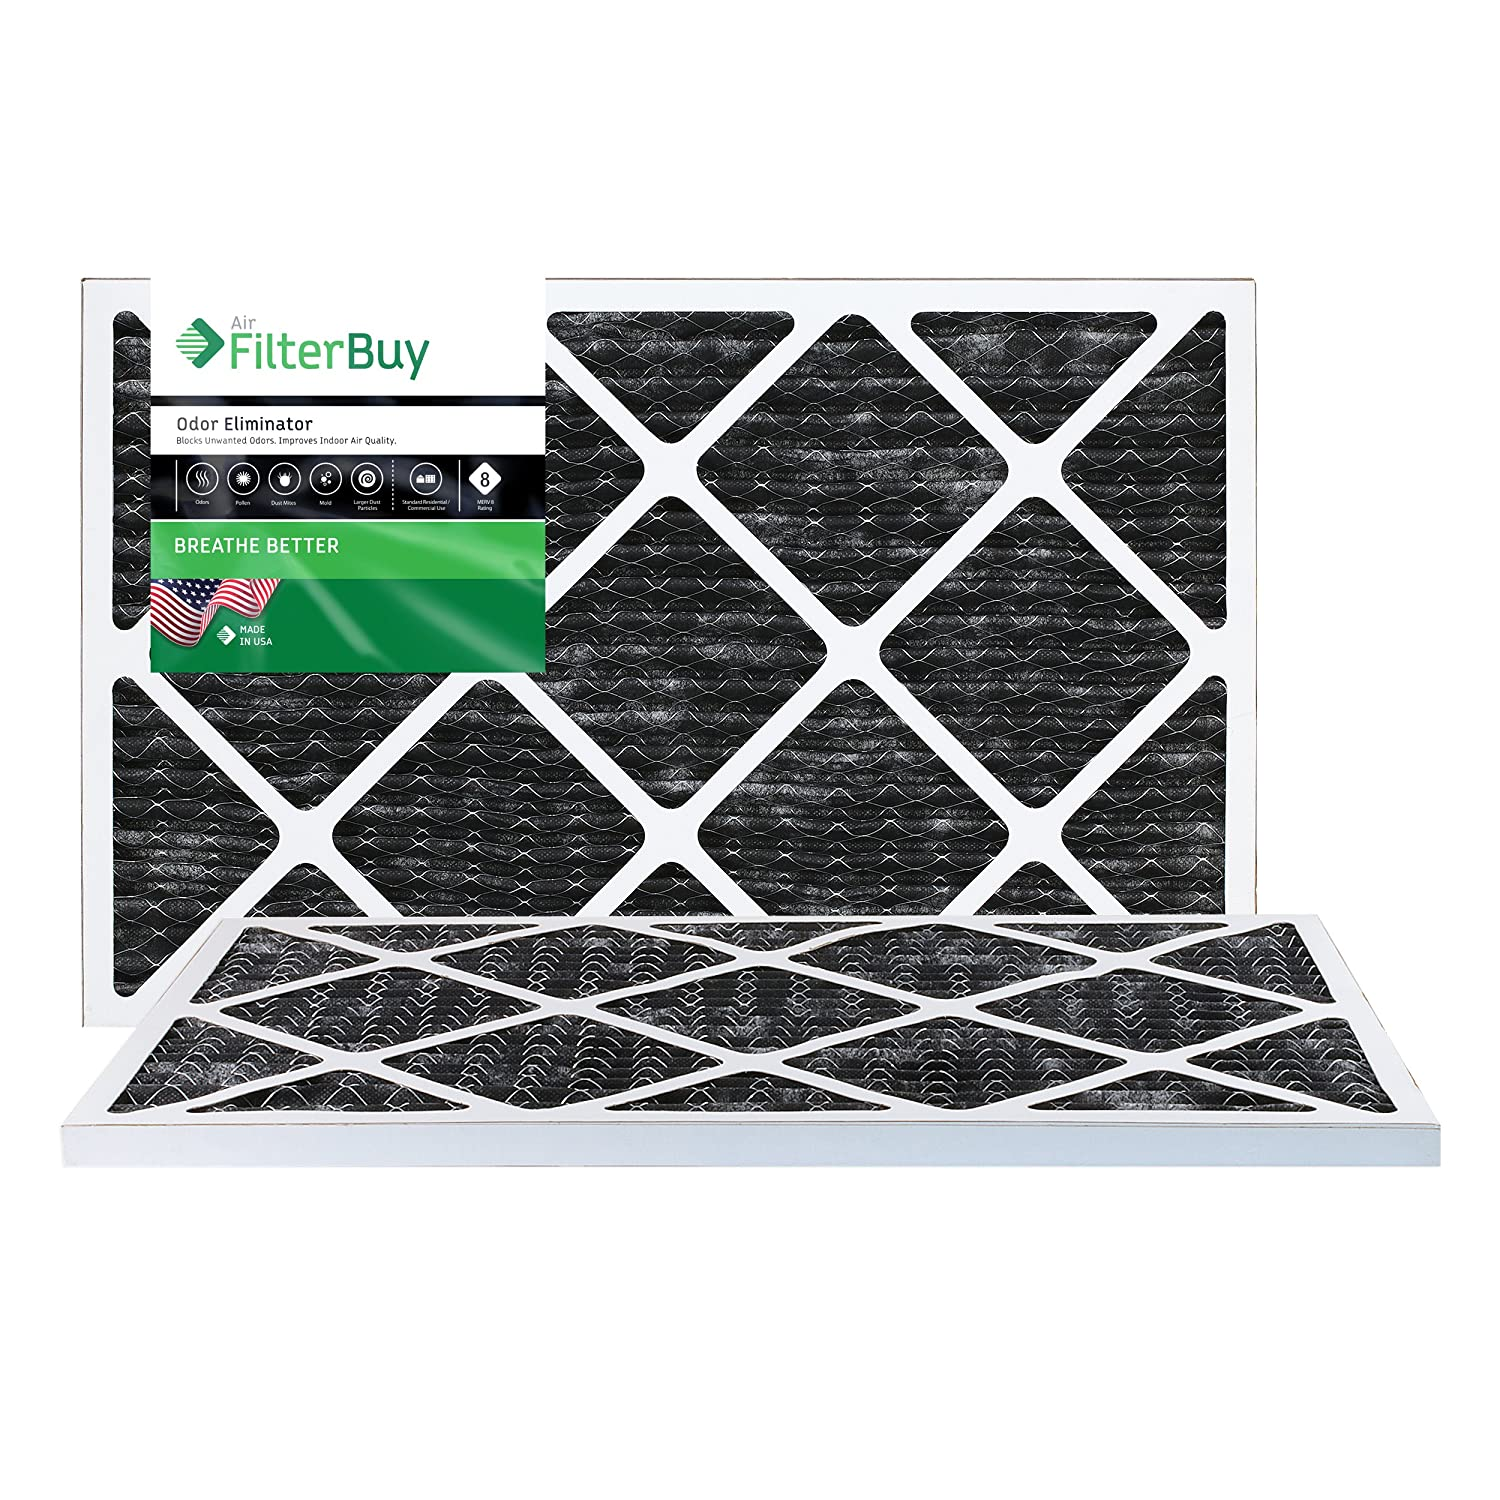 1. FilterBuy Allergen Odor Eliminator 14x25x1 MERV 8 Pleated AC Furnace Air Filter with Activated Carbon - Pack of 2-14x25x1